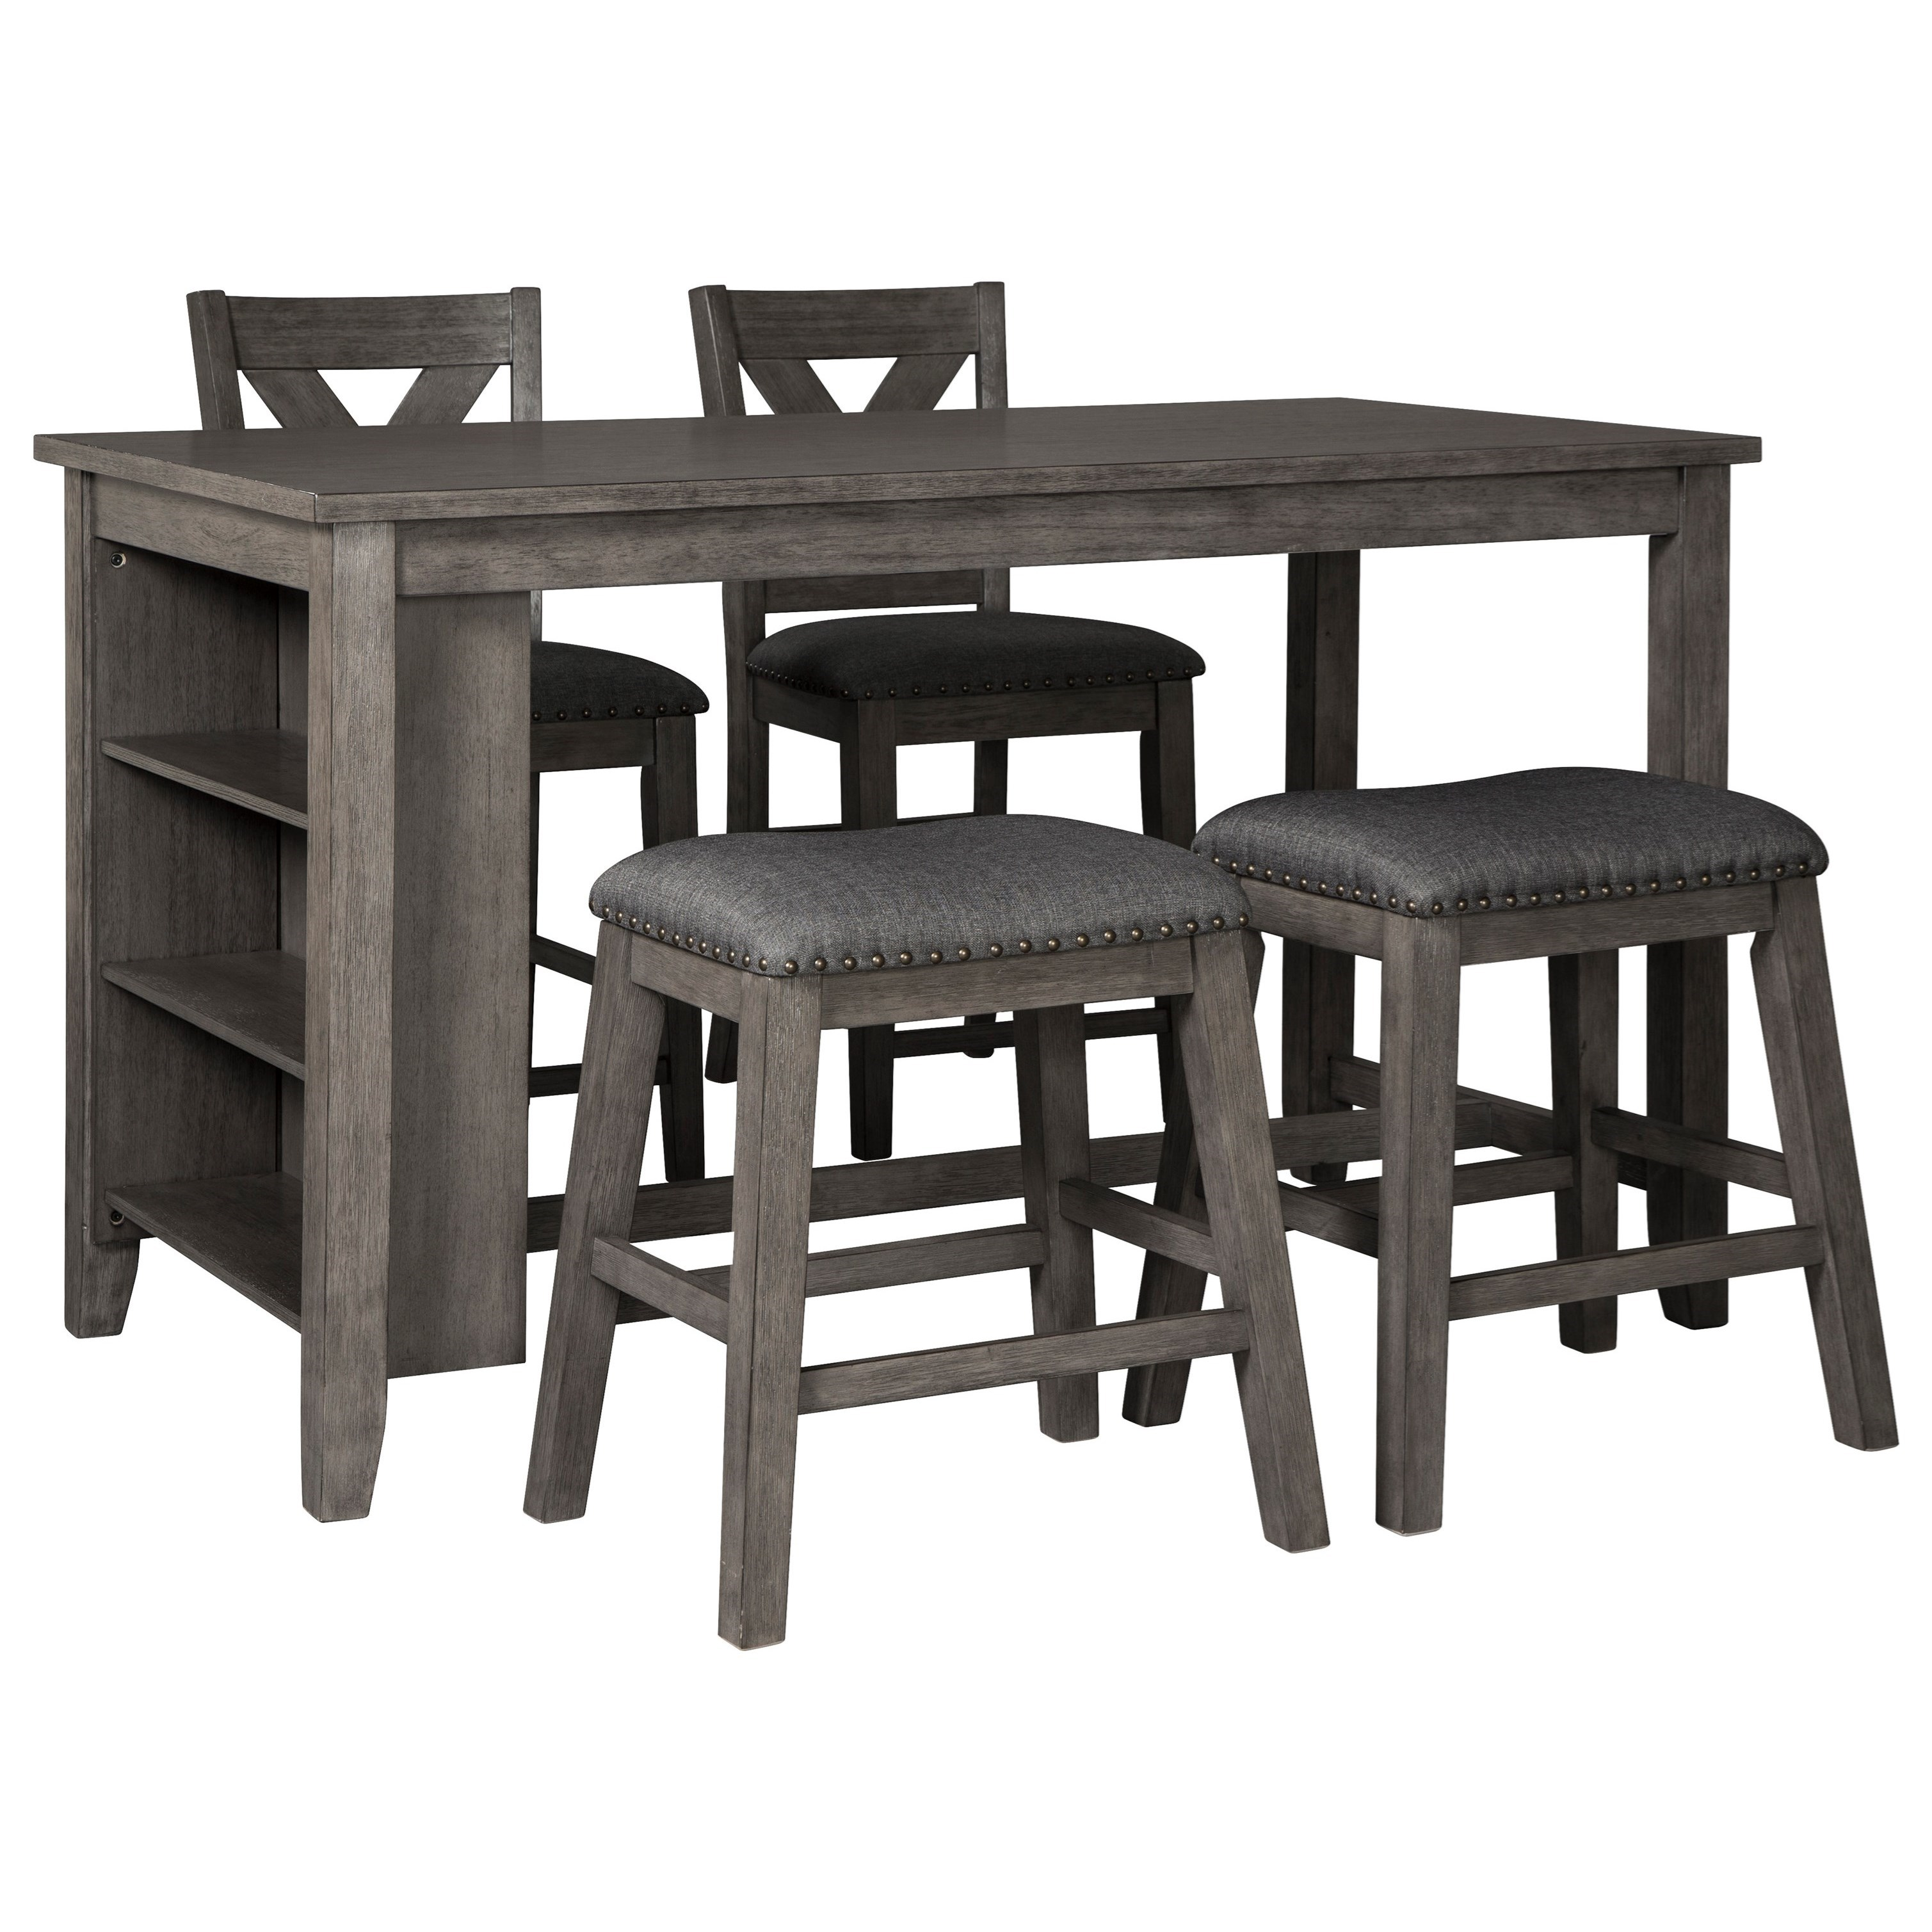 Caitbrook Five Piece Kitchen Island & Chair Set by Signature Design by Ashley at Sparks HomeStore